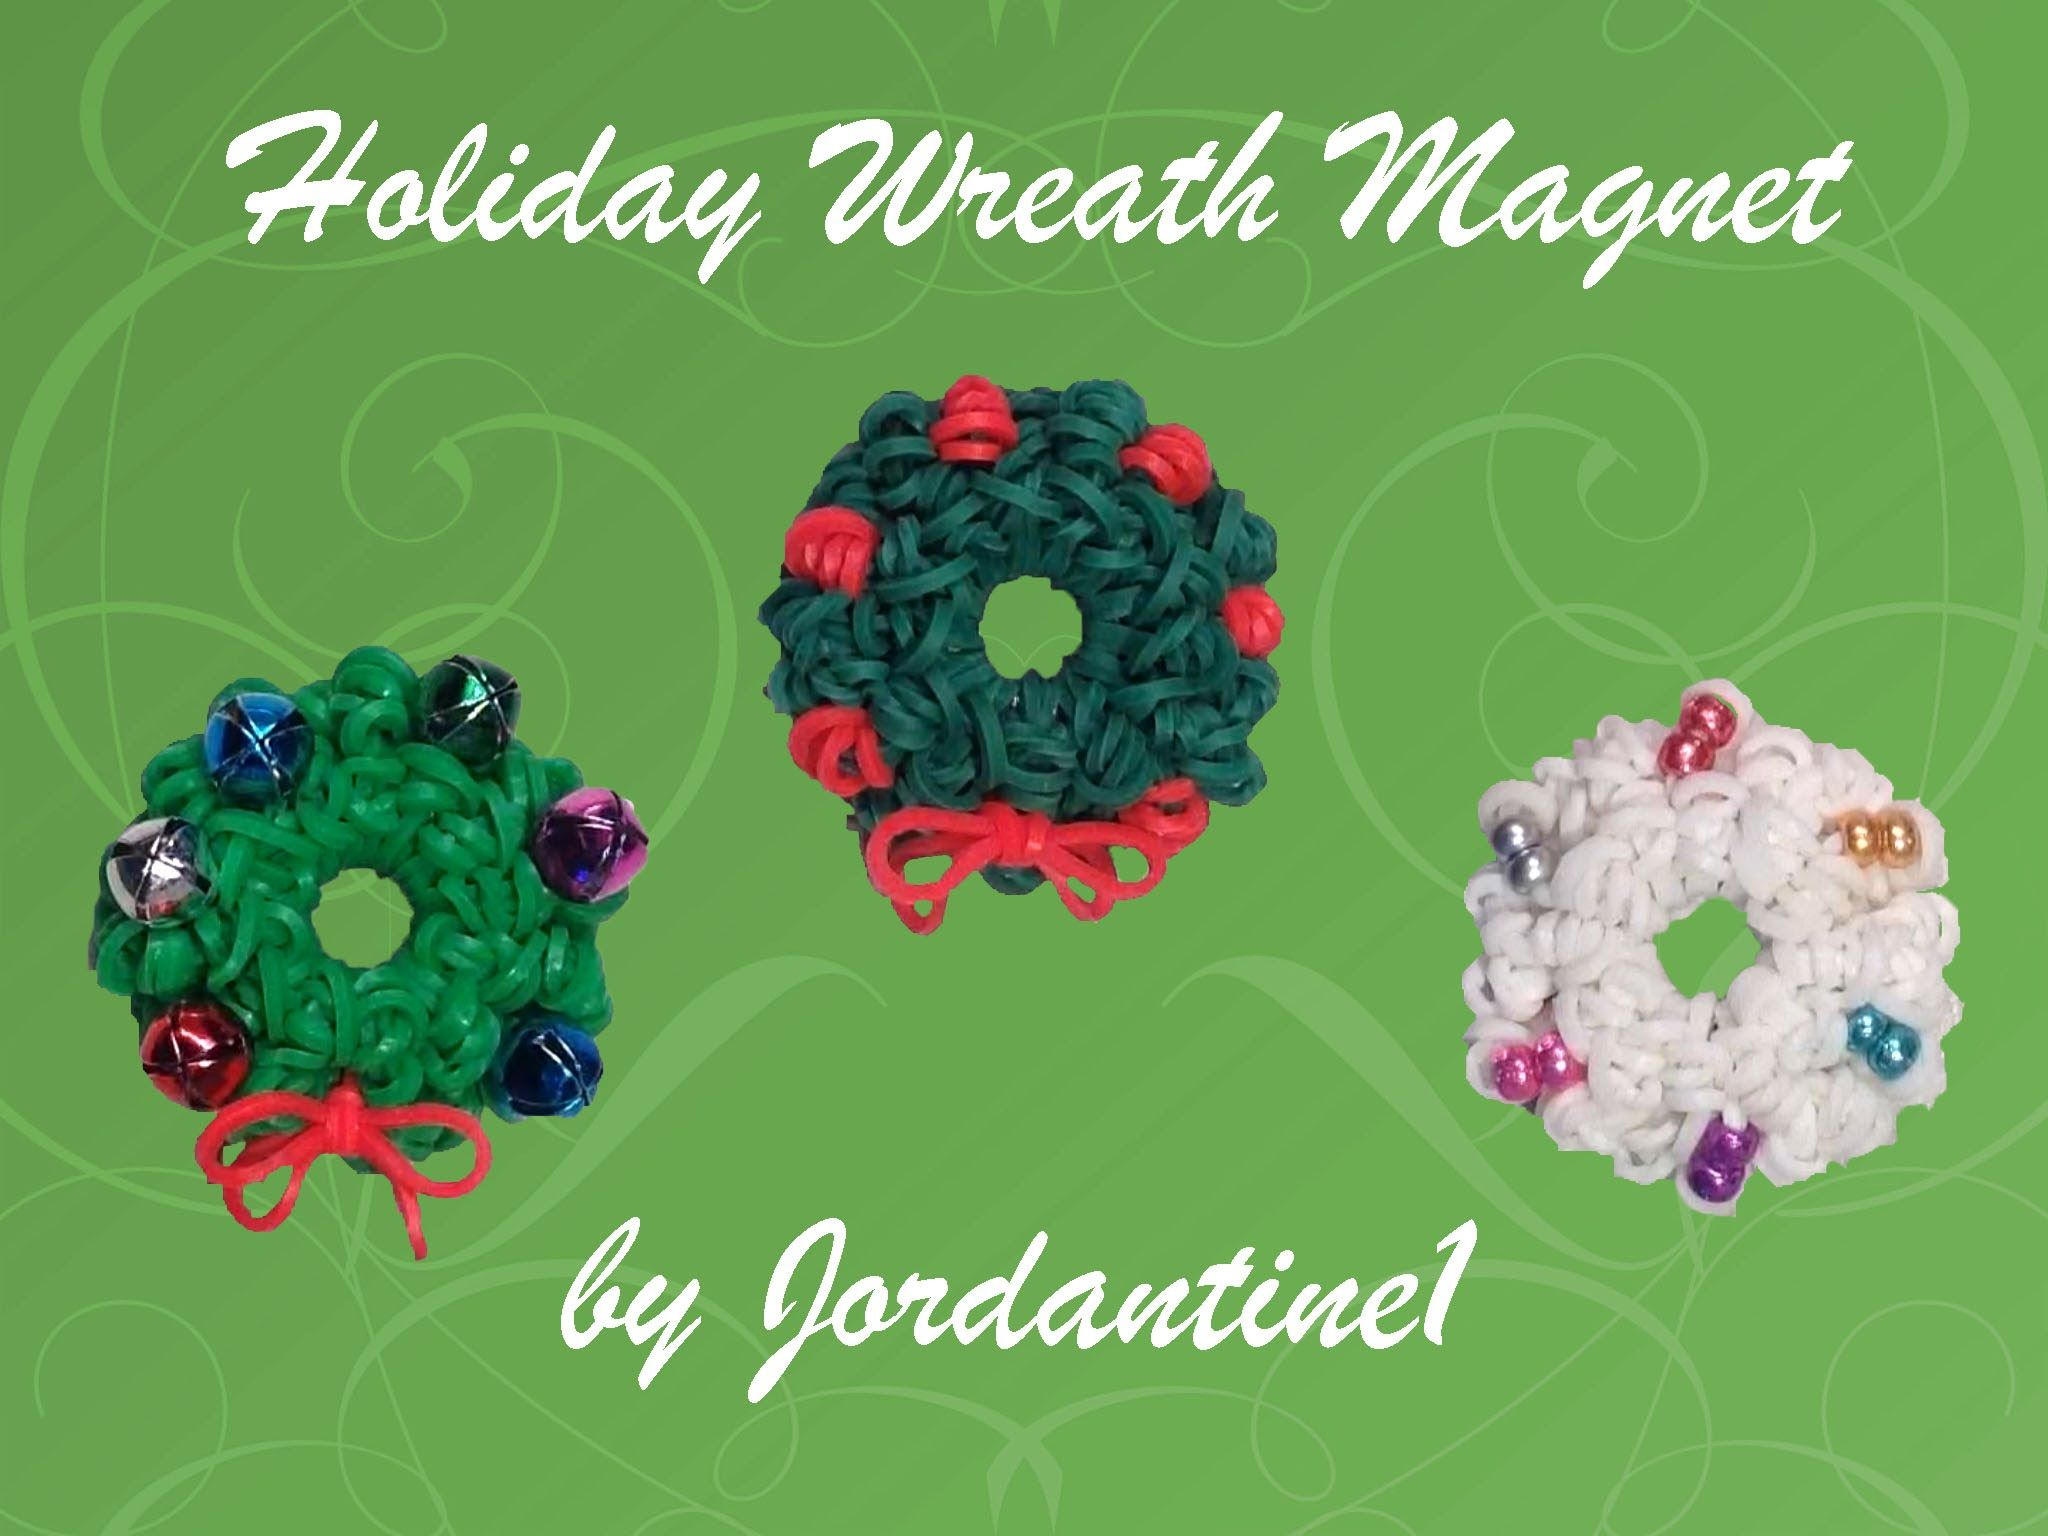 New Holiday Wreath Magnet Charm Loomless Hook Only Christmas tutorial by Jordantine1.